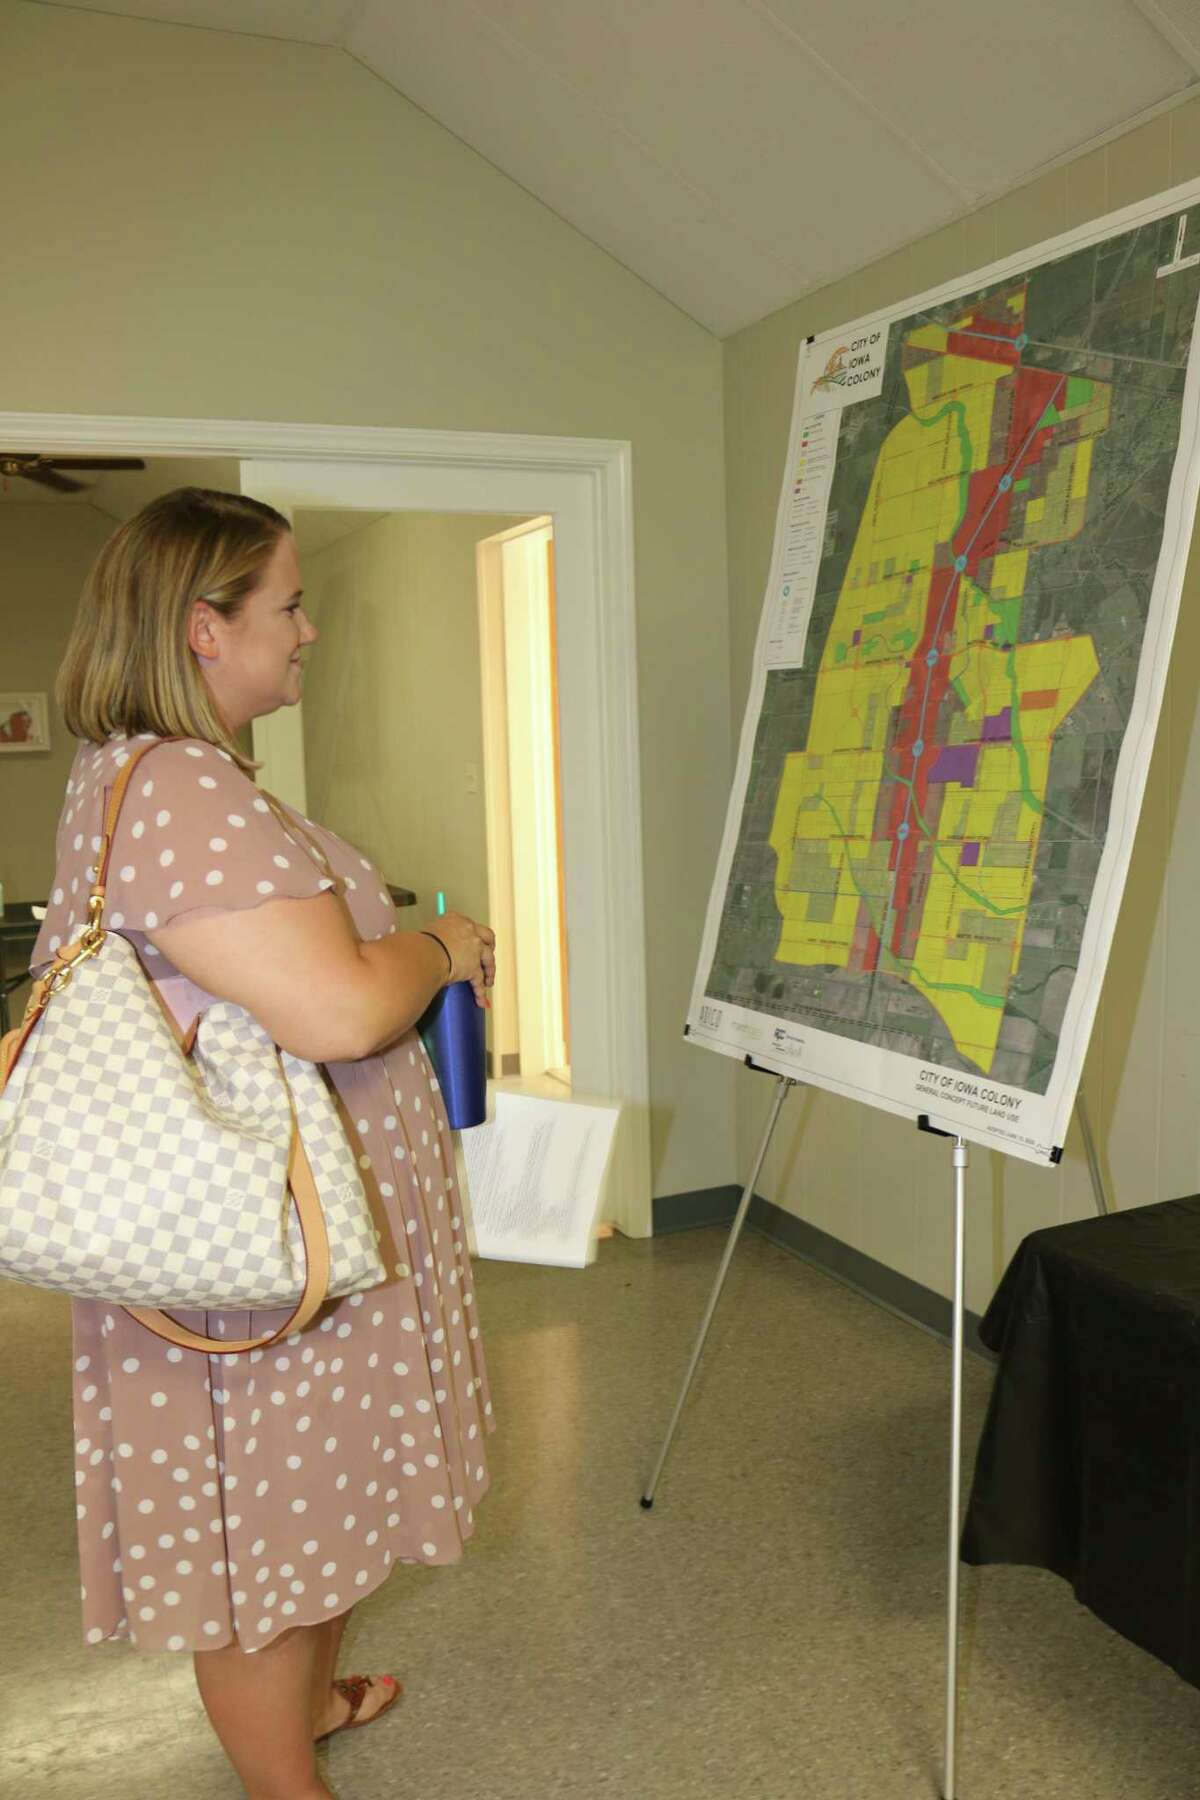 Sydney Hargroder checks out a map of what Iowa Colony's future land could look like.